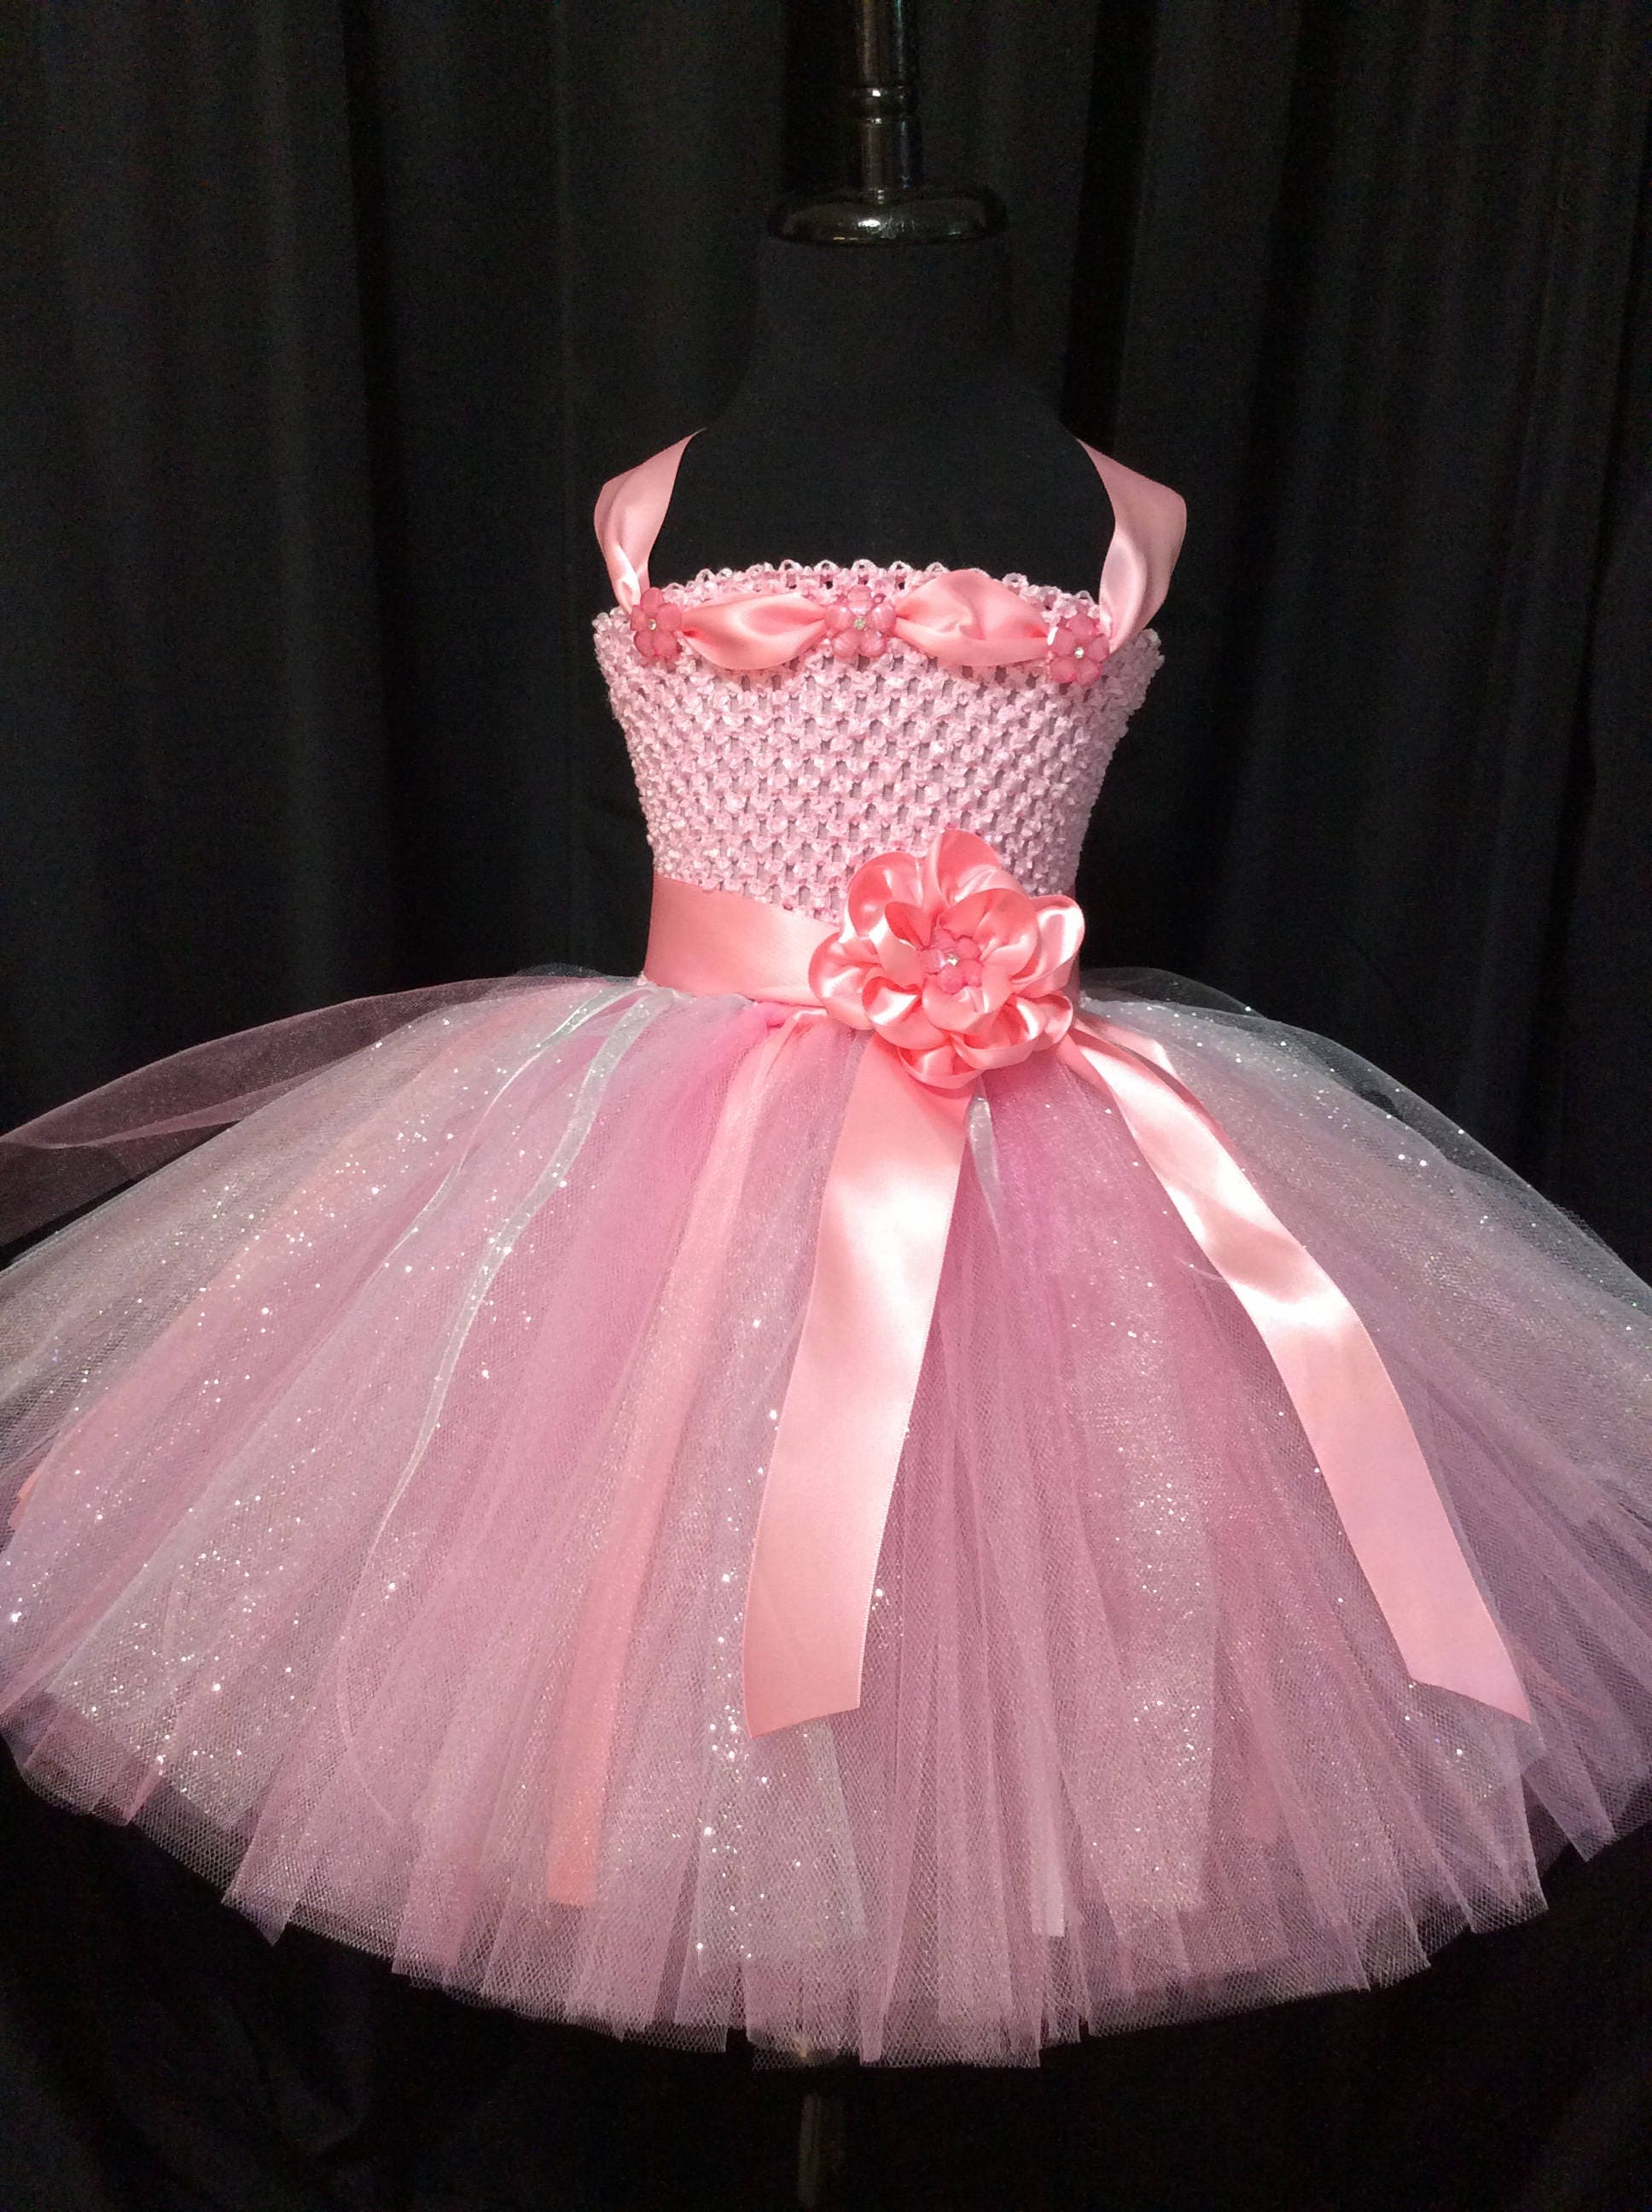 Pink and silver flower girl dress tulle flower girl dress tutu pink and silver flower girl dress tulle flower girl dress tutu dress for girls tutu flower girl dress wedding pink flower girl dress mightylinksfo